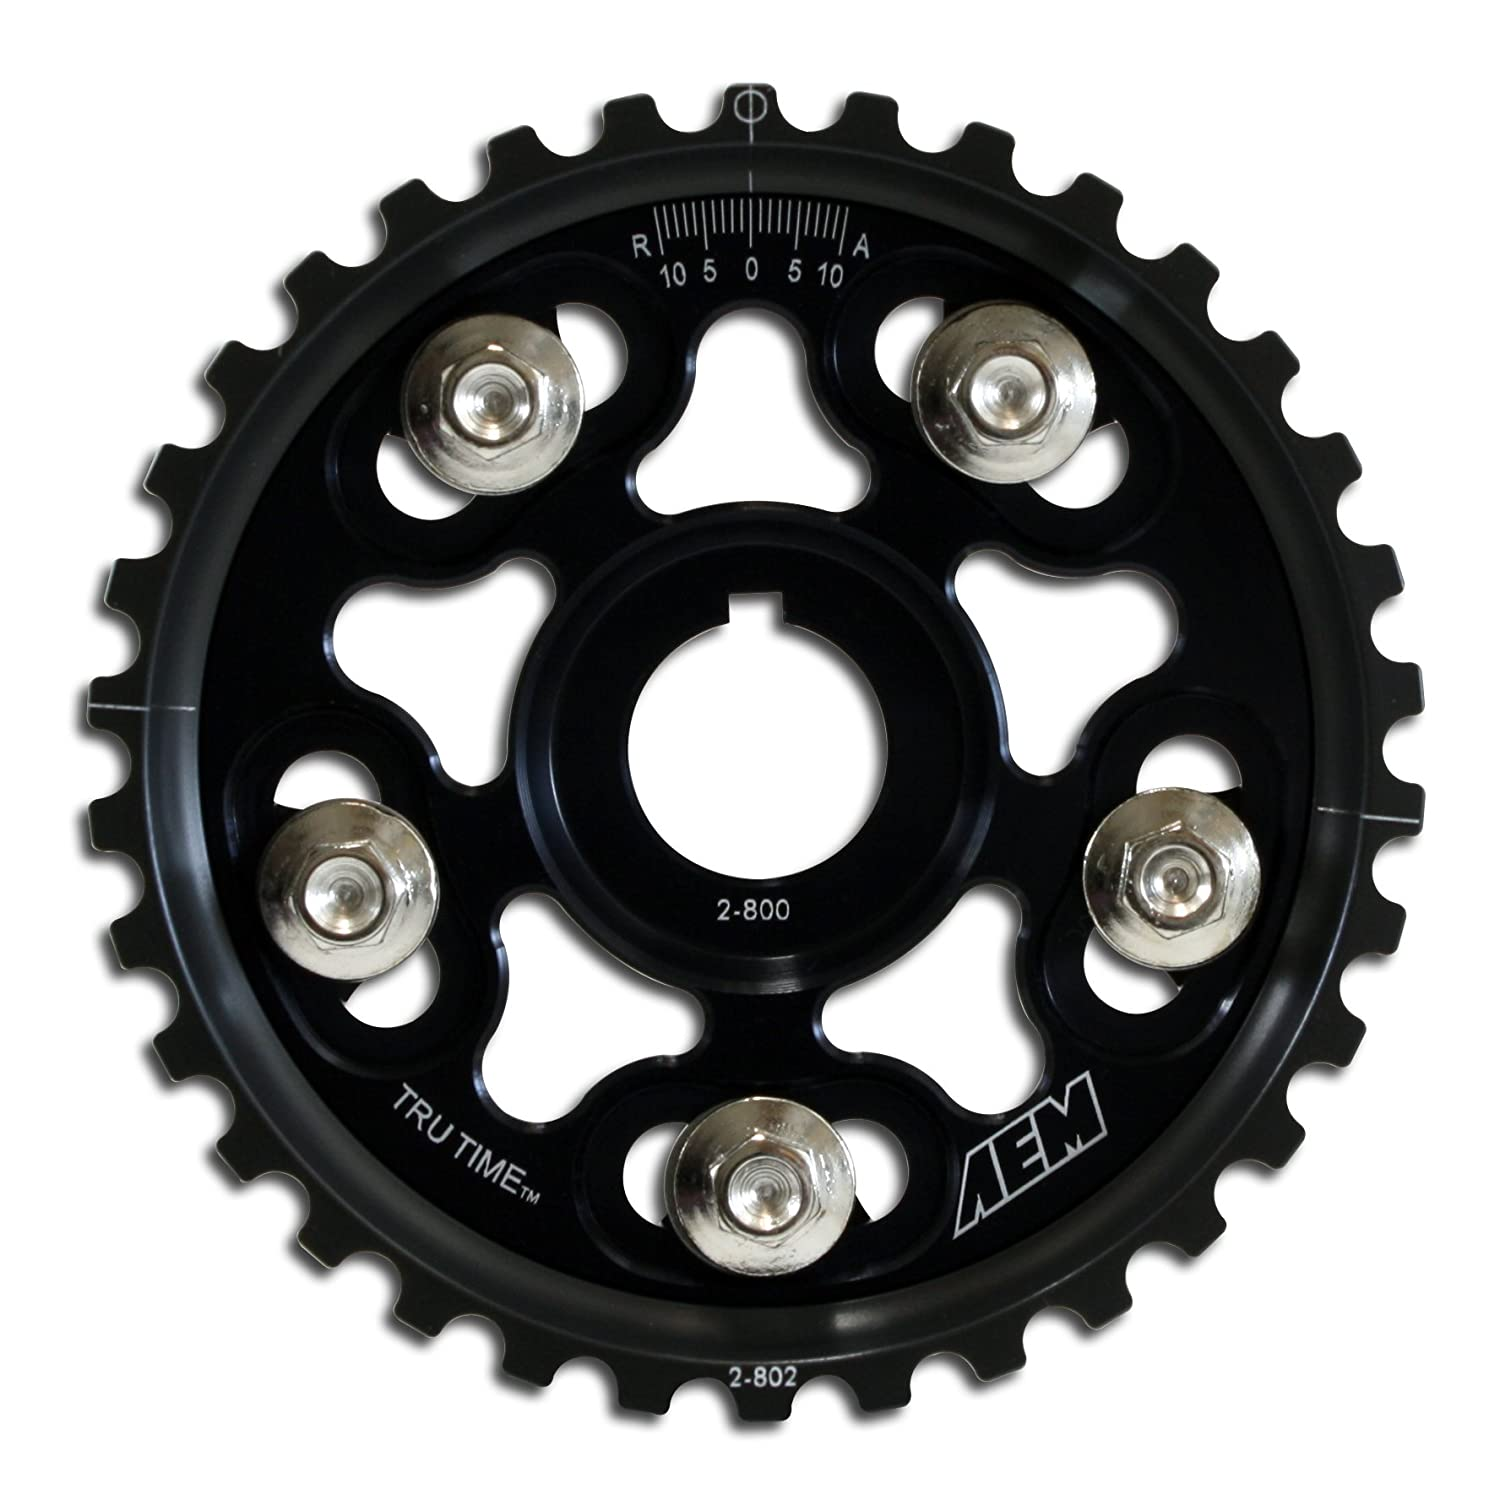 AEM 23-802BK Black Tru-Time Adjustable Cam Gear